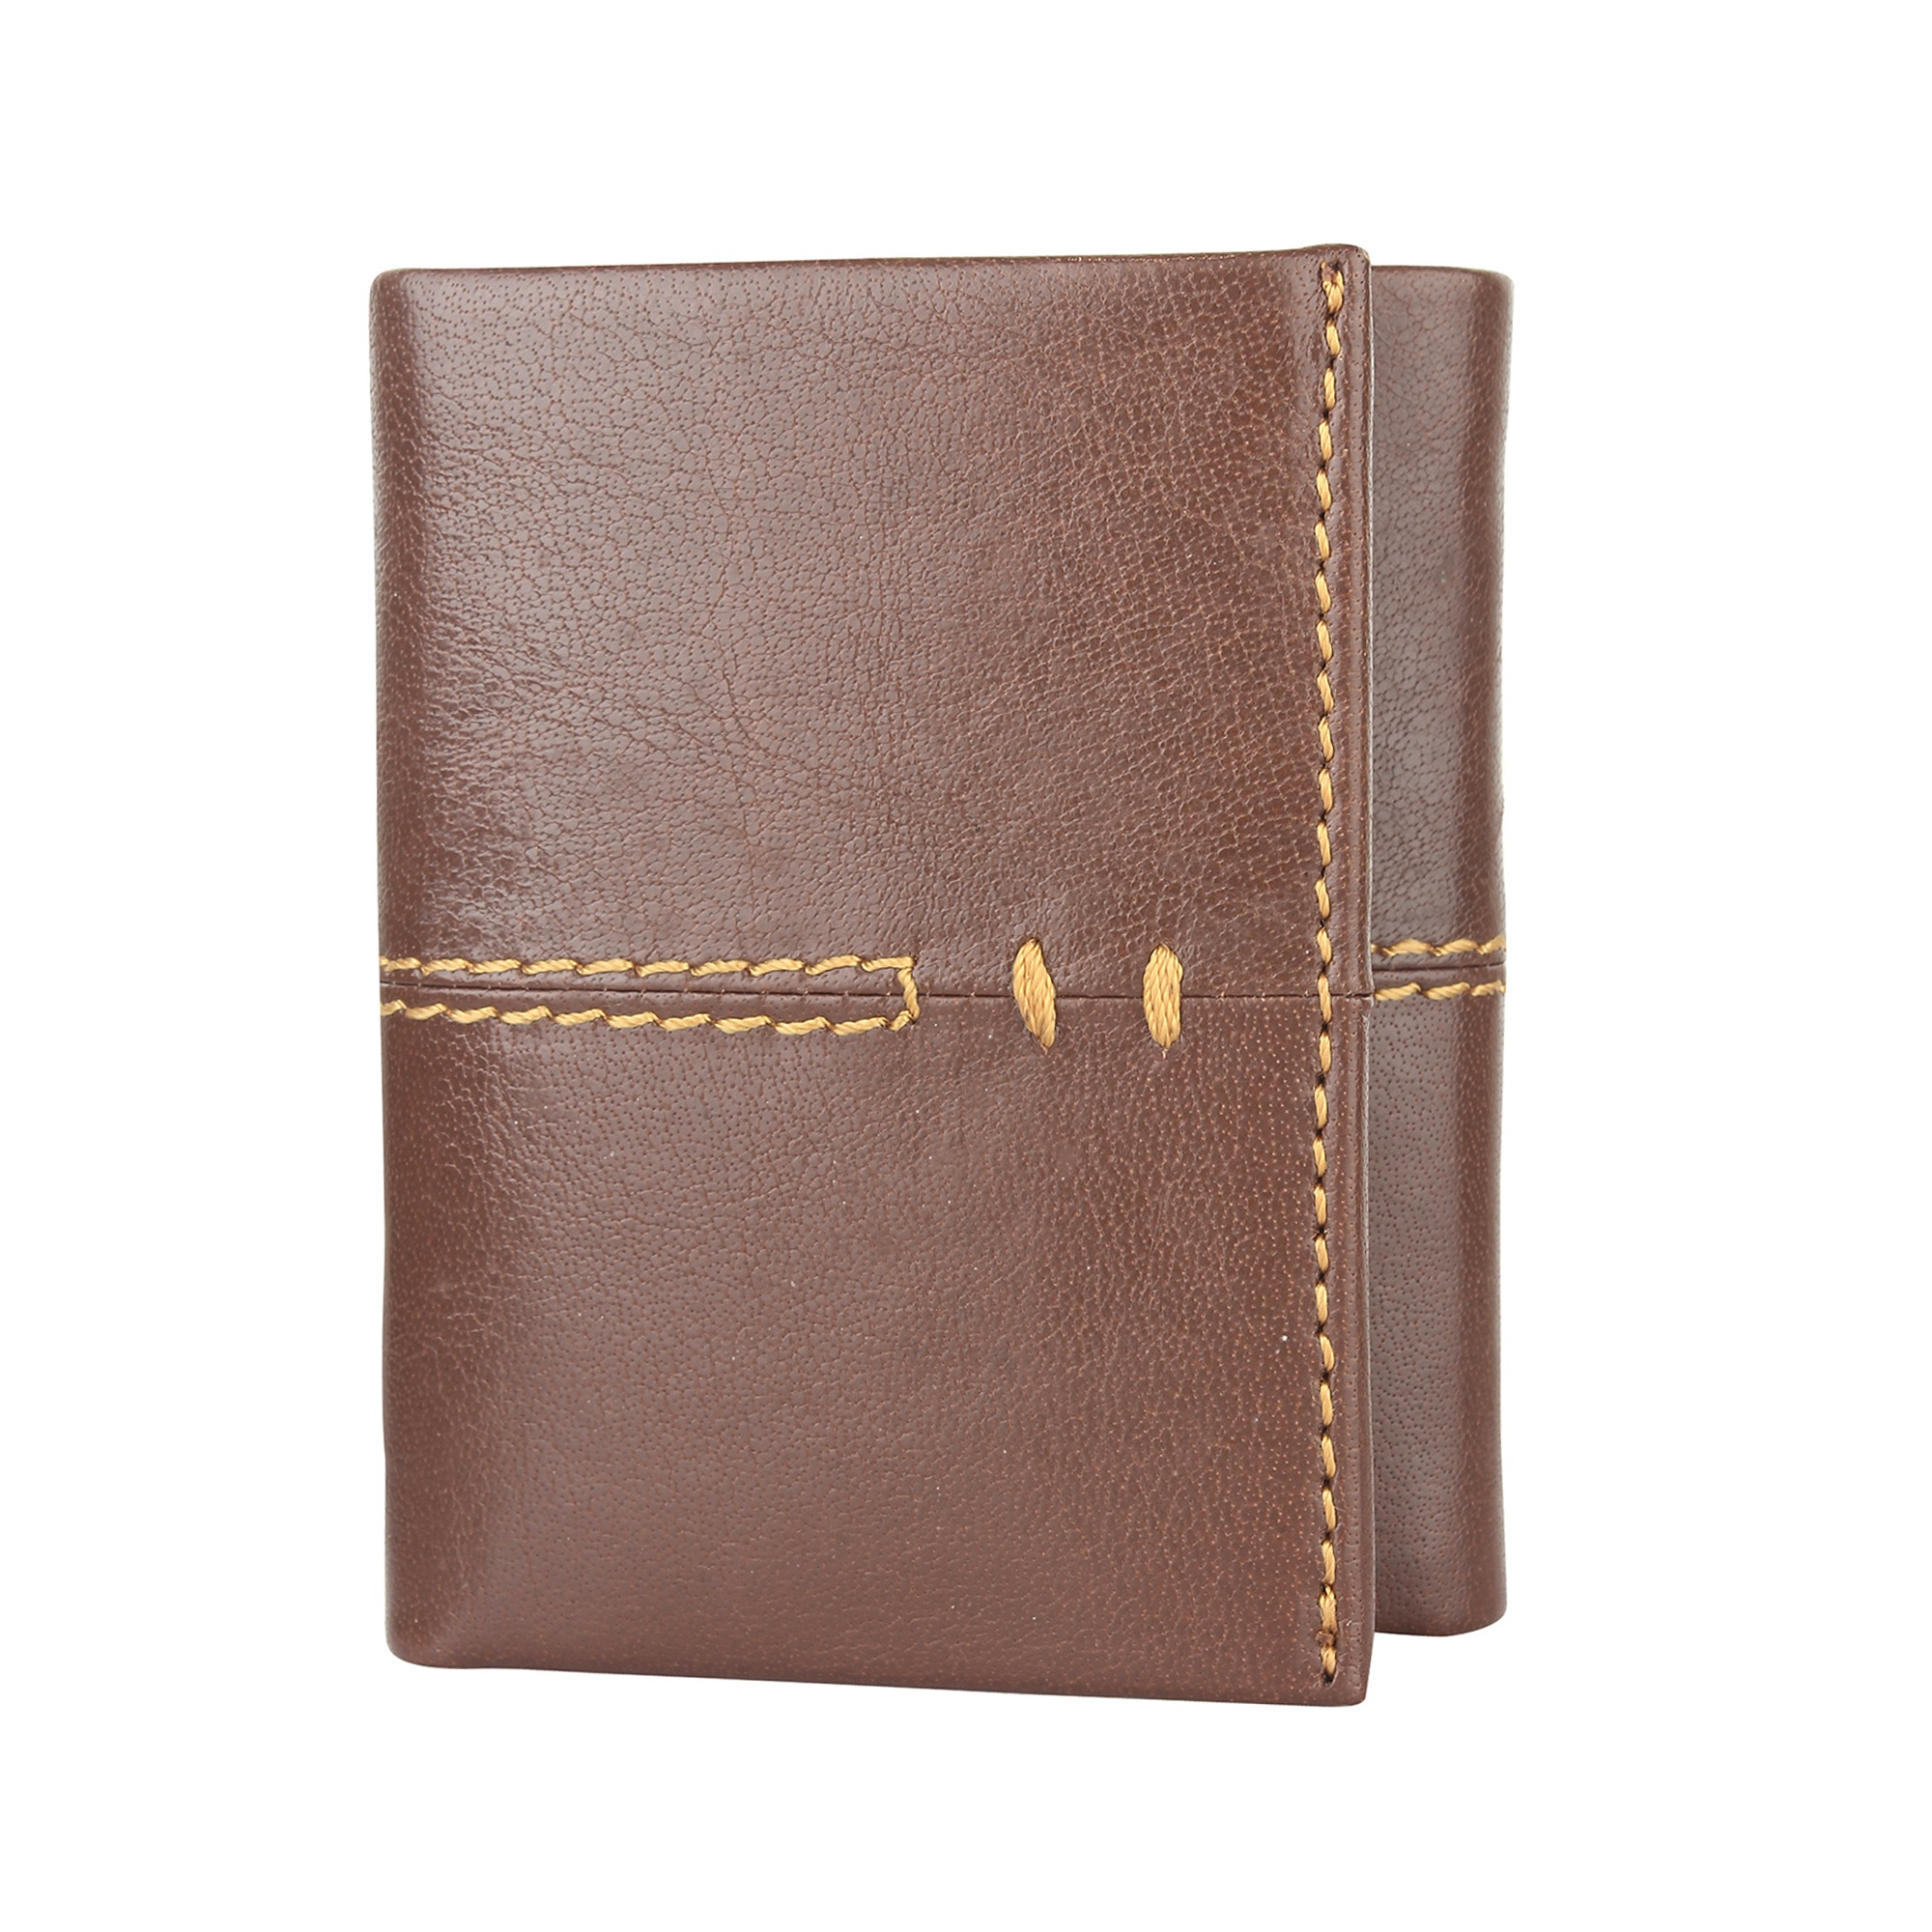 Leather Wallets Manufacturers in Kolkata, Leather Wallets Suppliers in Kolkata, Leather Wallets Wholesalers in Kolkata, Leather Wallets Traders in Kolkata